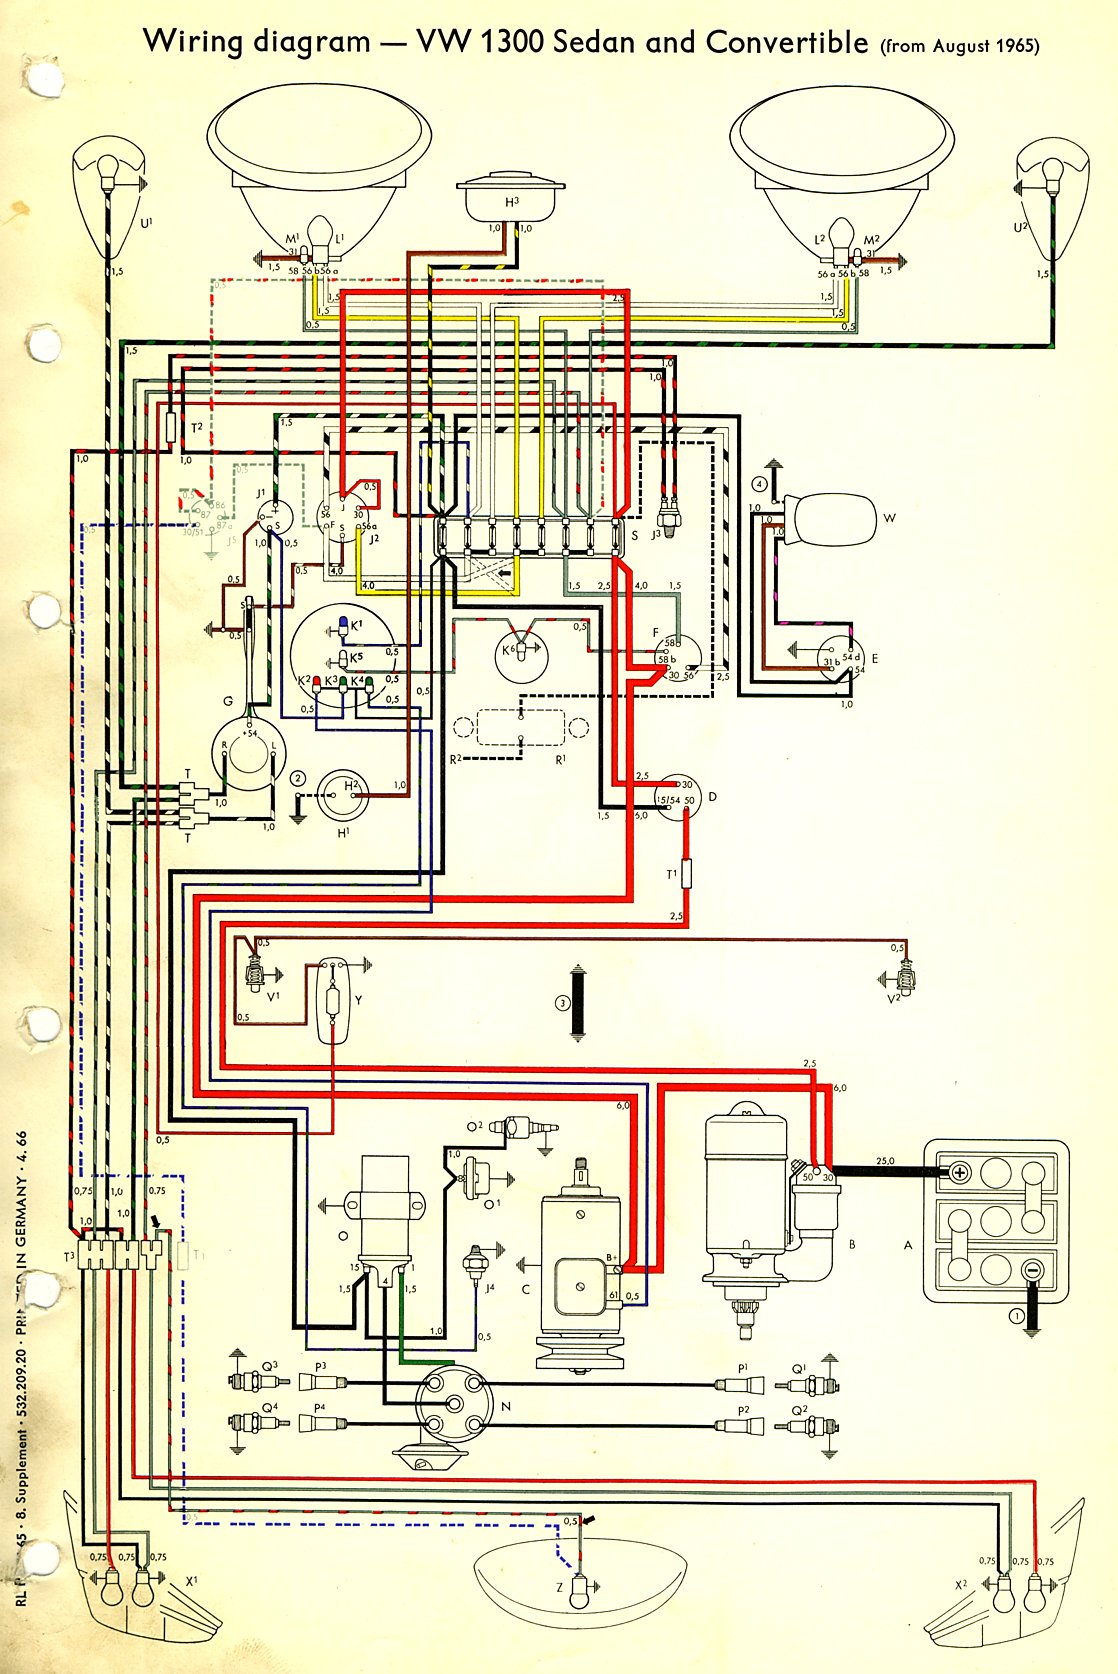 Vw wiring diagram custom wiring diagram thesamba com type 1 wiring diagrams rh thesamba com vw wiring diagram 1600 air cooled vw wiring diagrams free downloads asfbconference2016 Choice Image